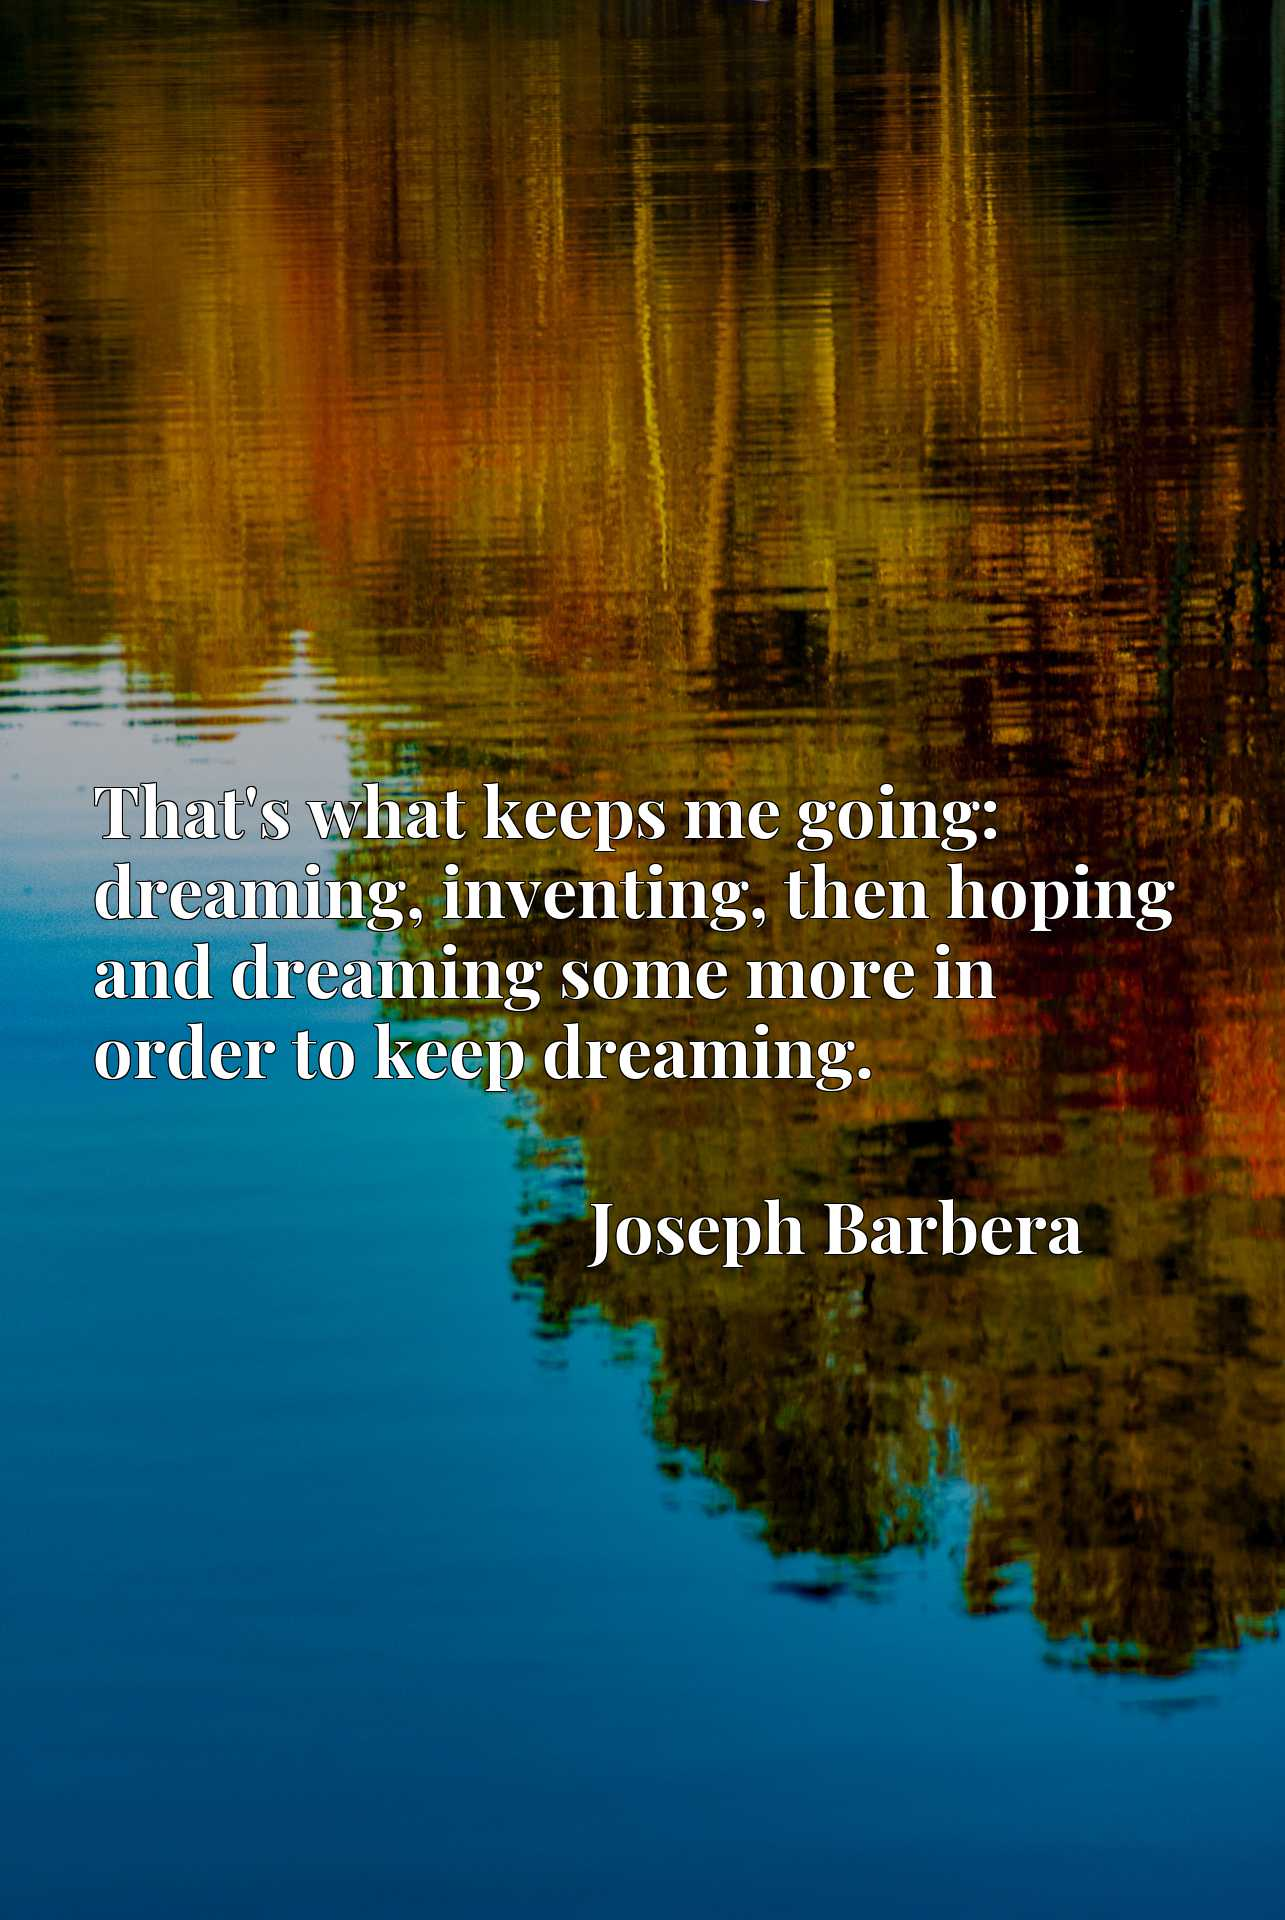 That's what keeps me going: dreaming, inventing, then hoping and dreaming some more in order to keep dreaming.